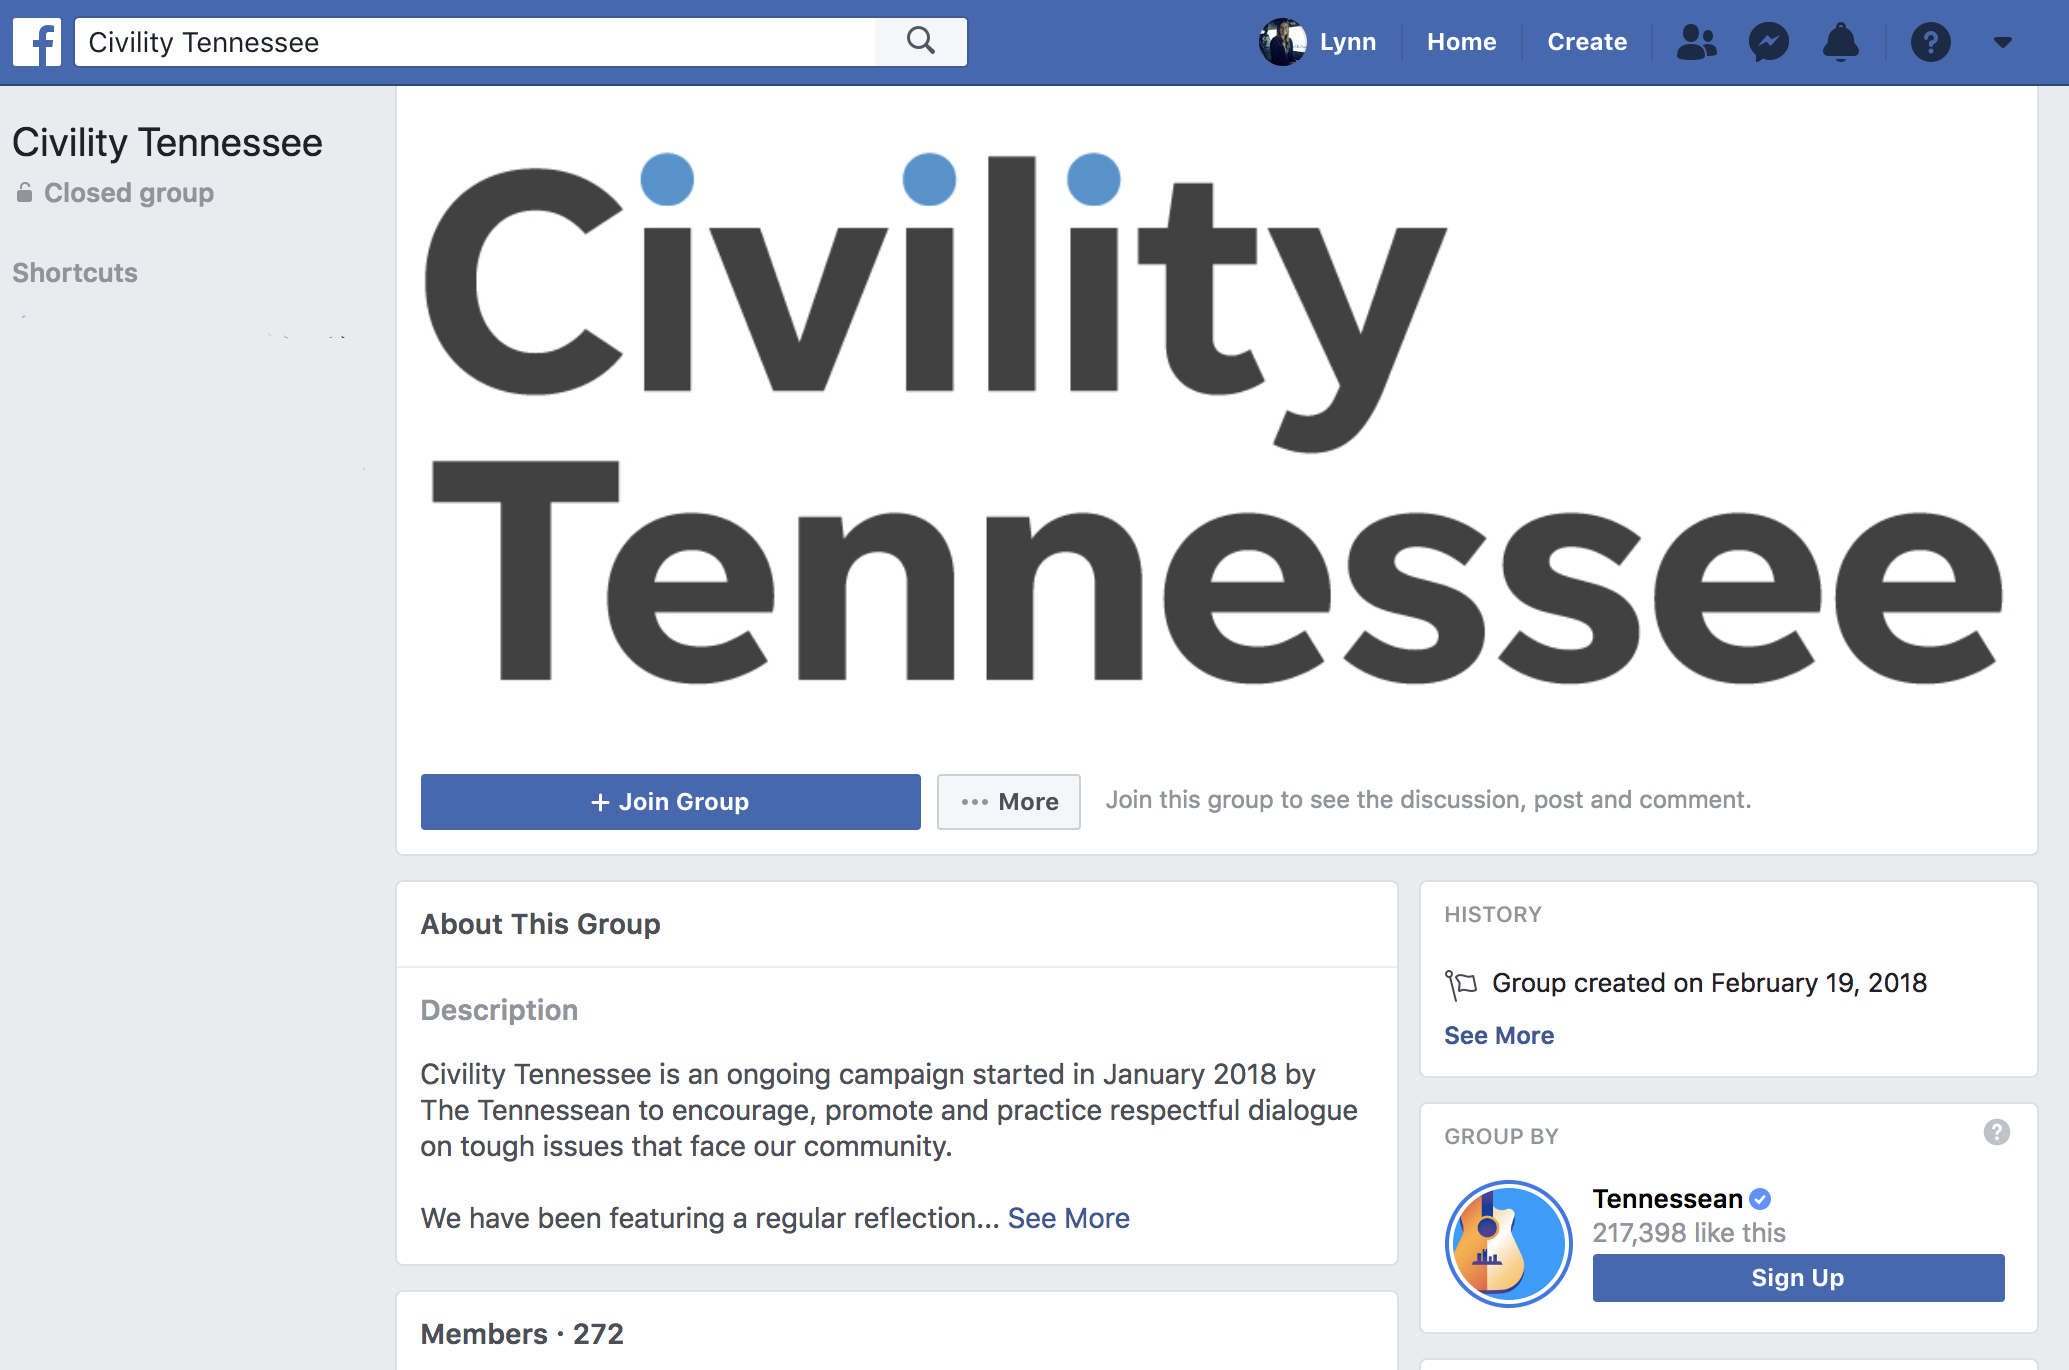 Screenshot from the Civility Tennessee group page on Facebook.